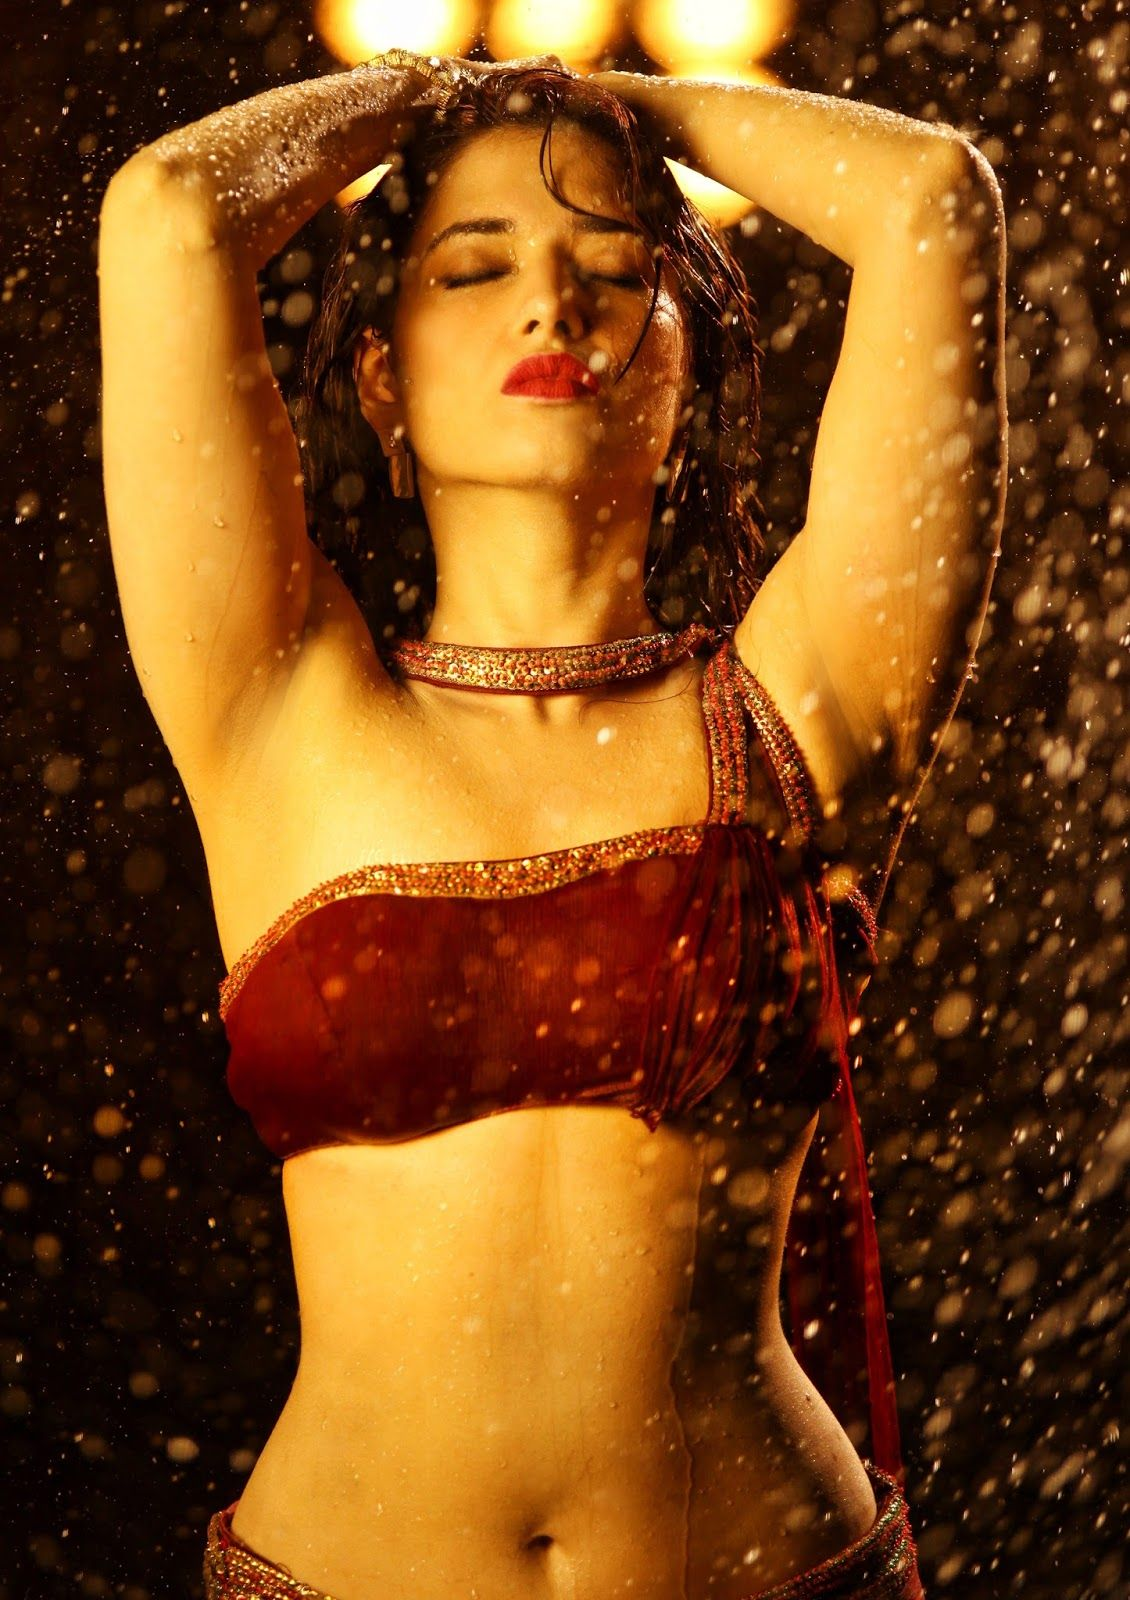 bengal tiger tamanna hot hd images | bedwalls.co